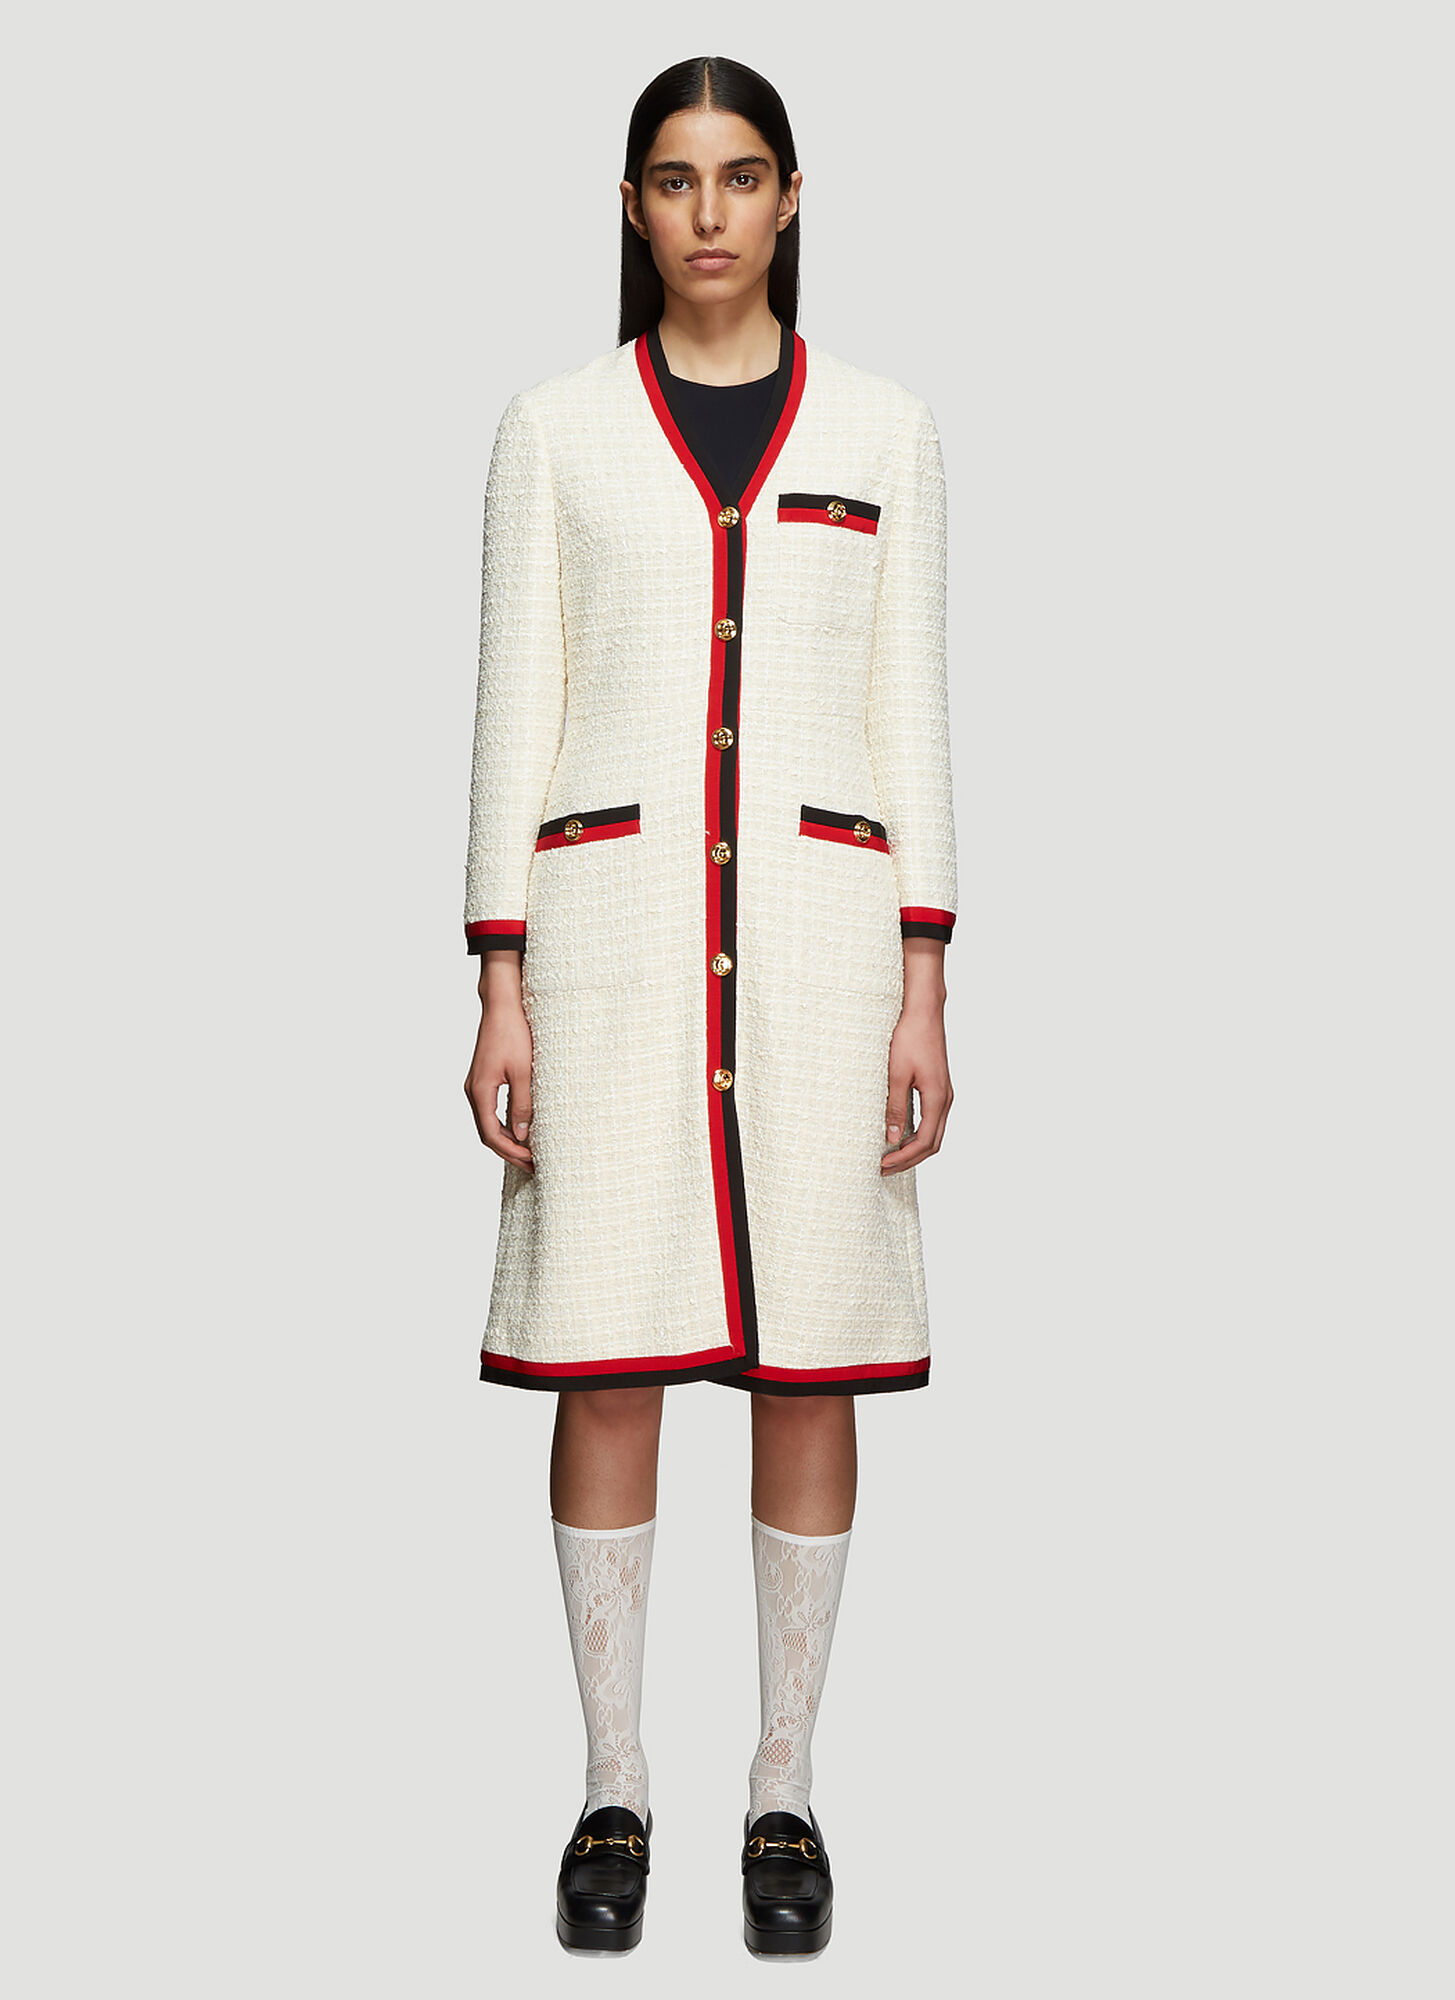 Gucci Tweed Half Dress in White